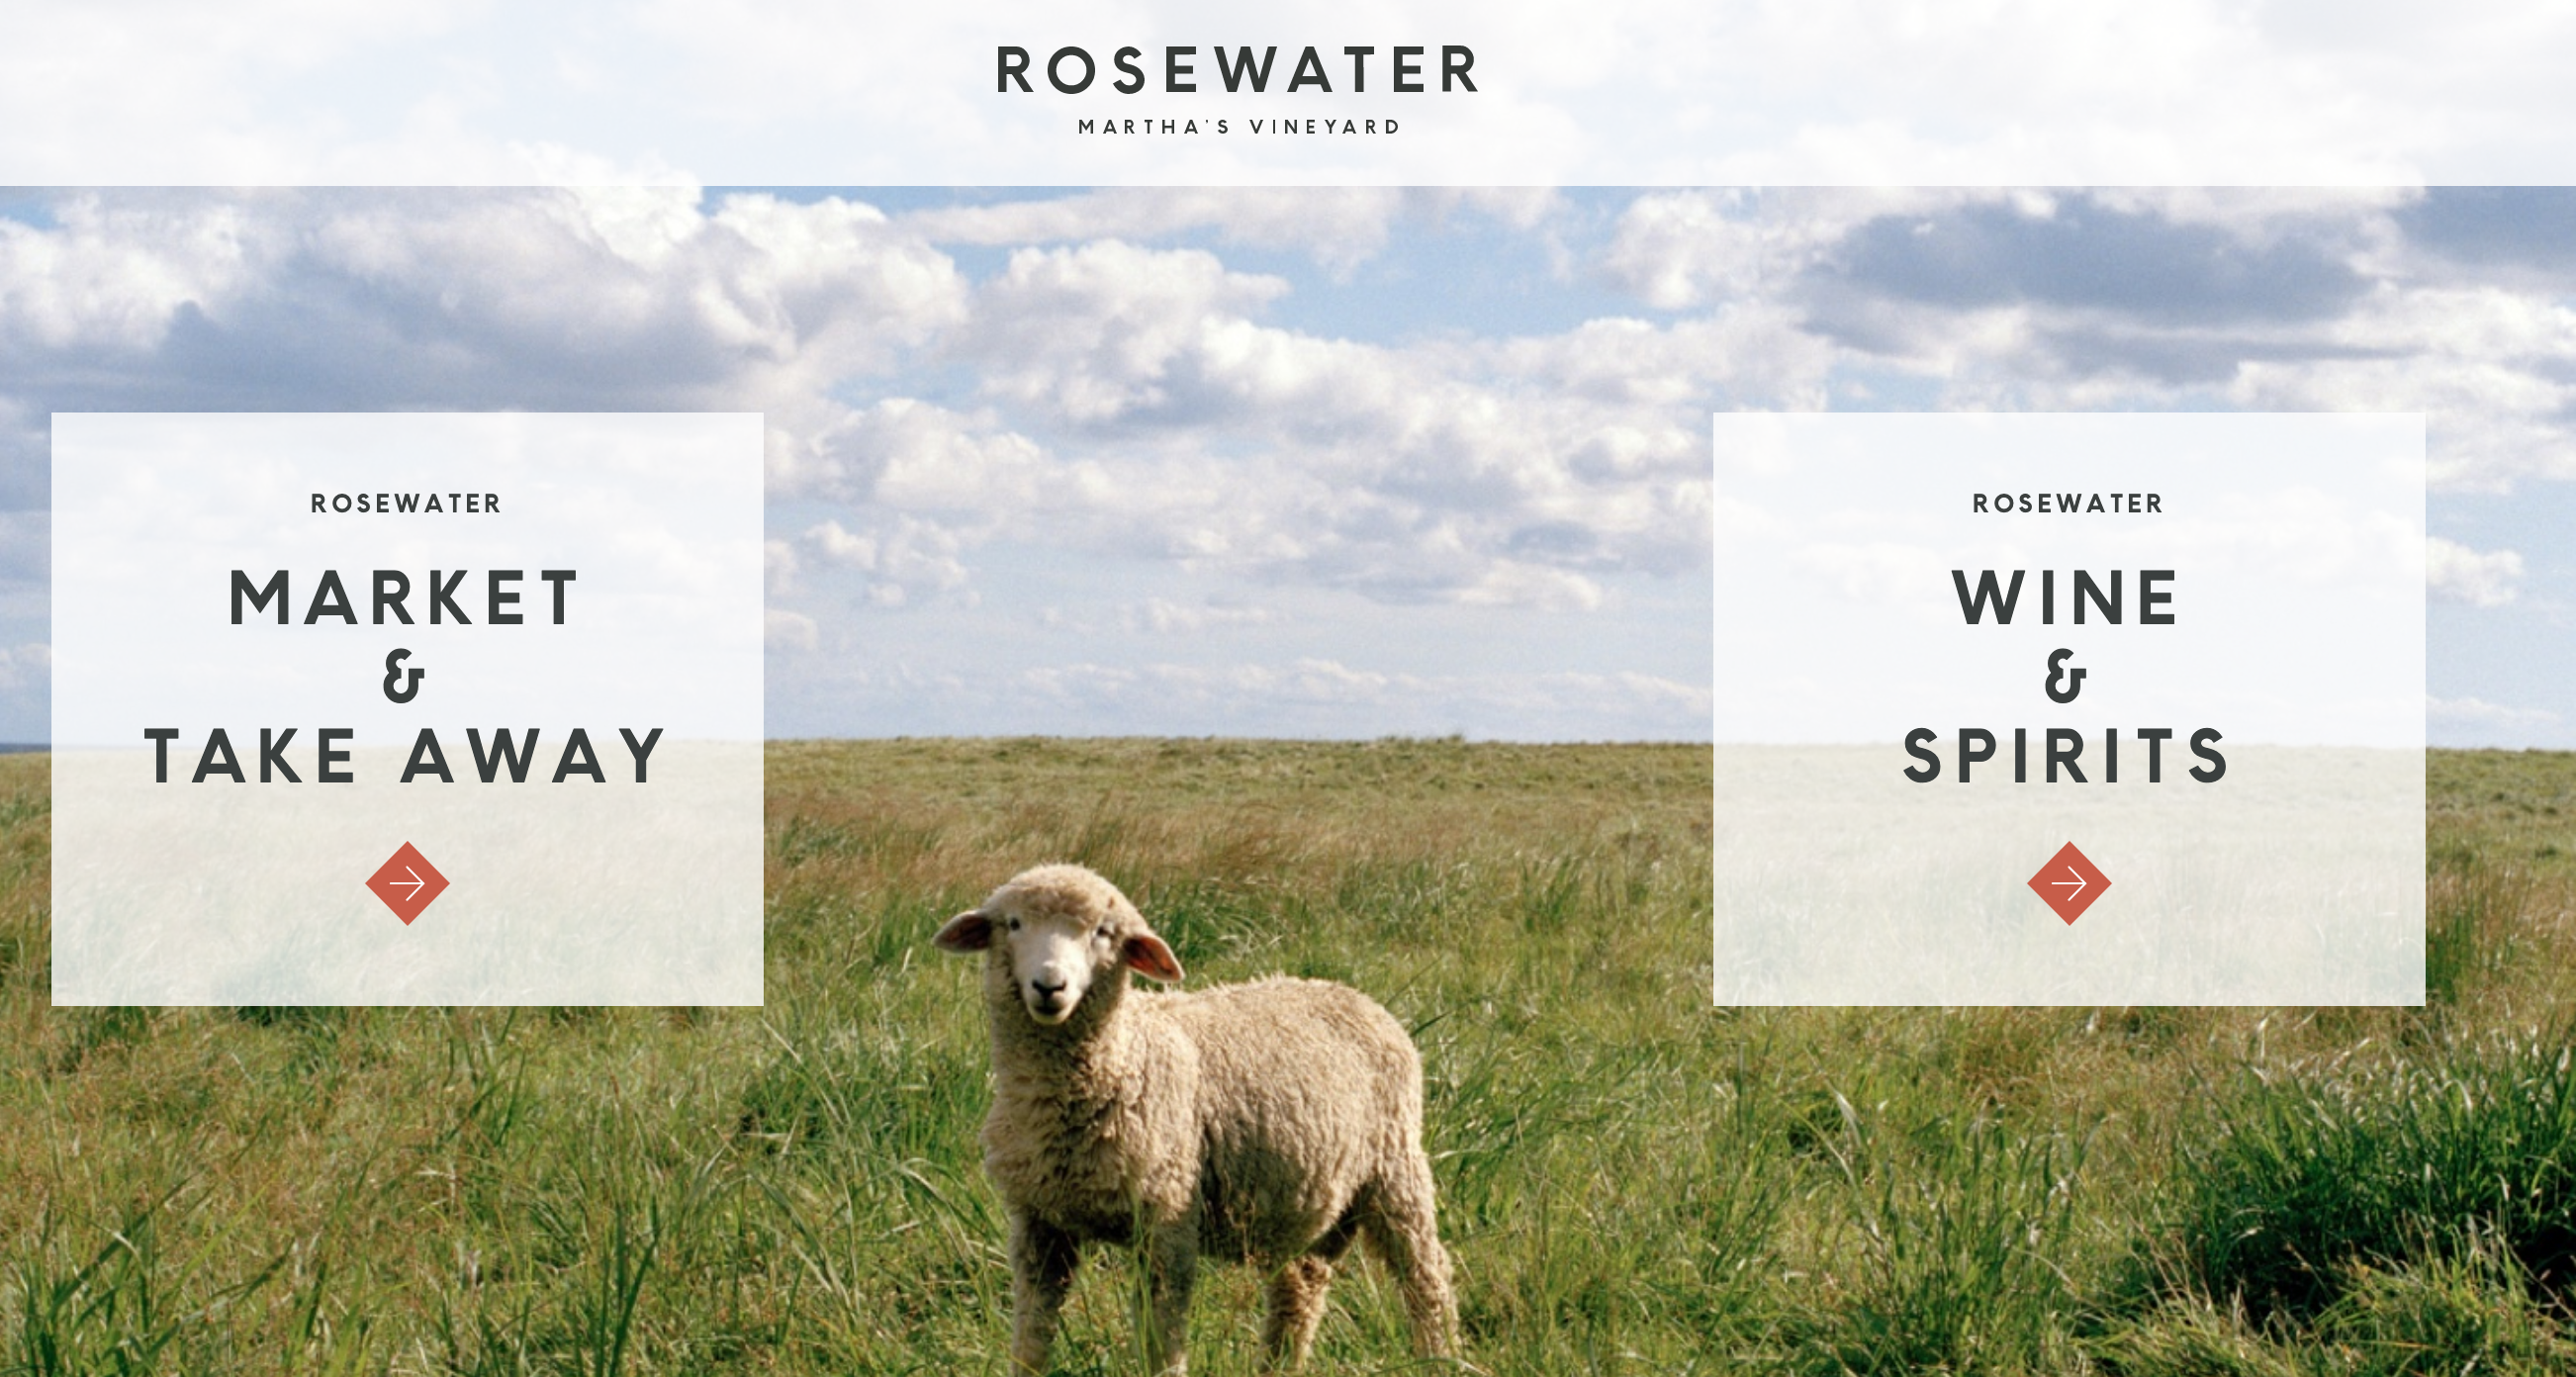 Rosewater Market website